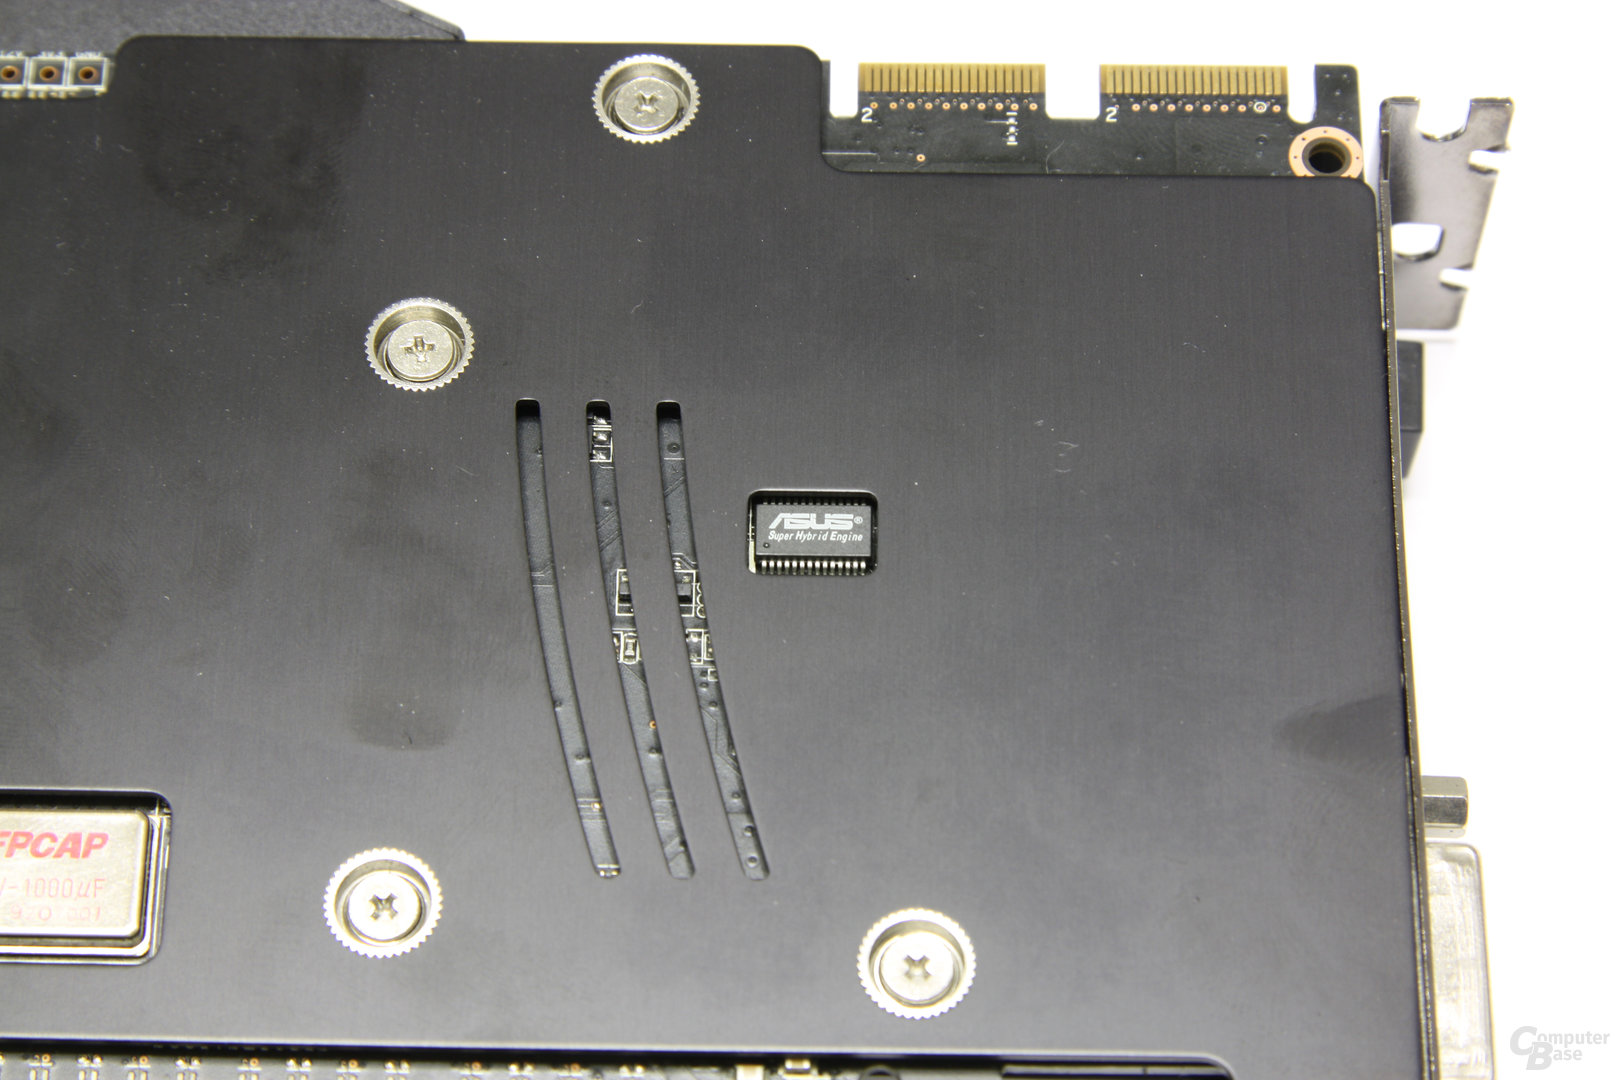 Radeon HD 5870 Matrix Asus-Chip